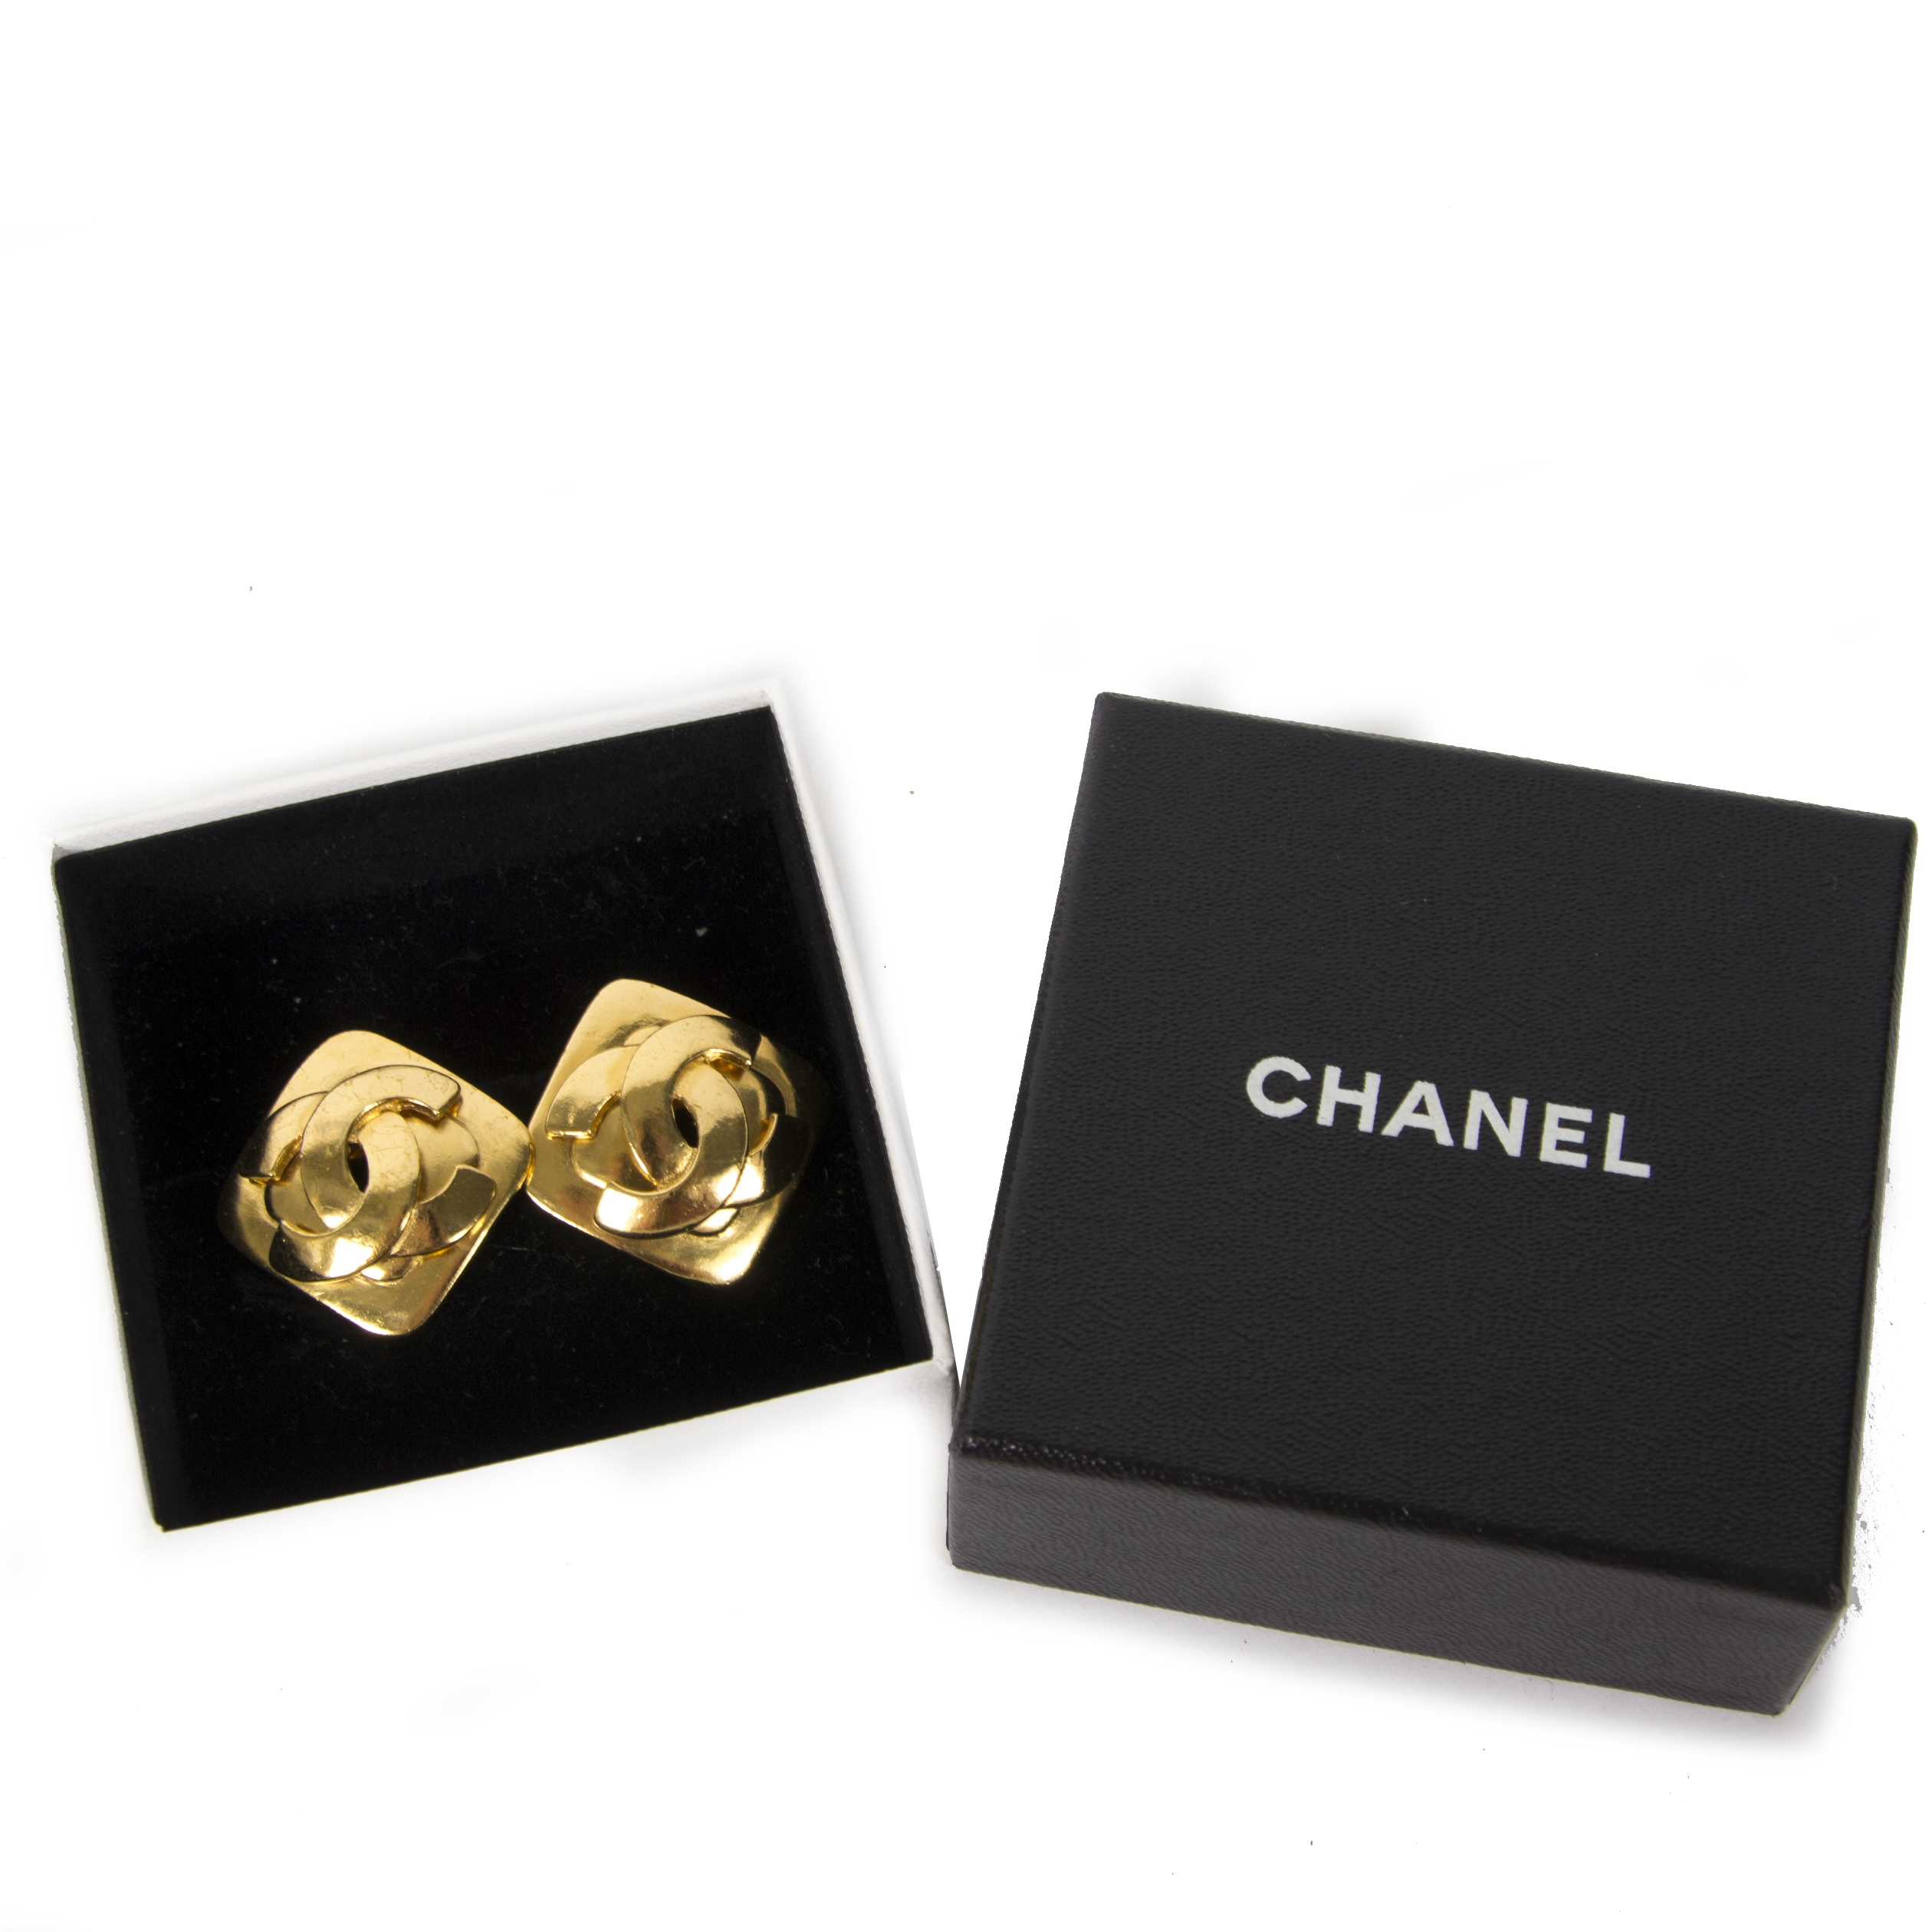 Chanel Gold Clip-on Earrings 2dehands